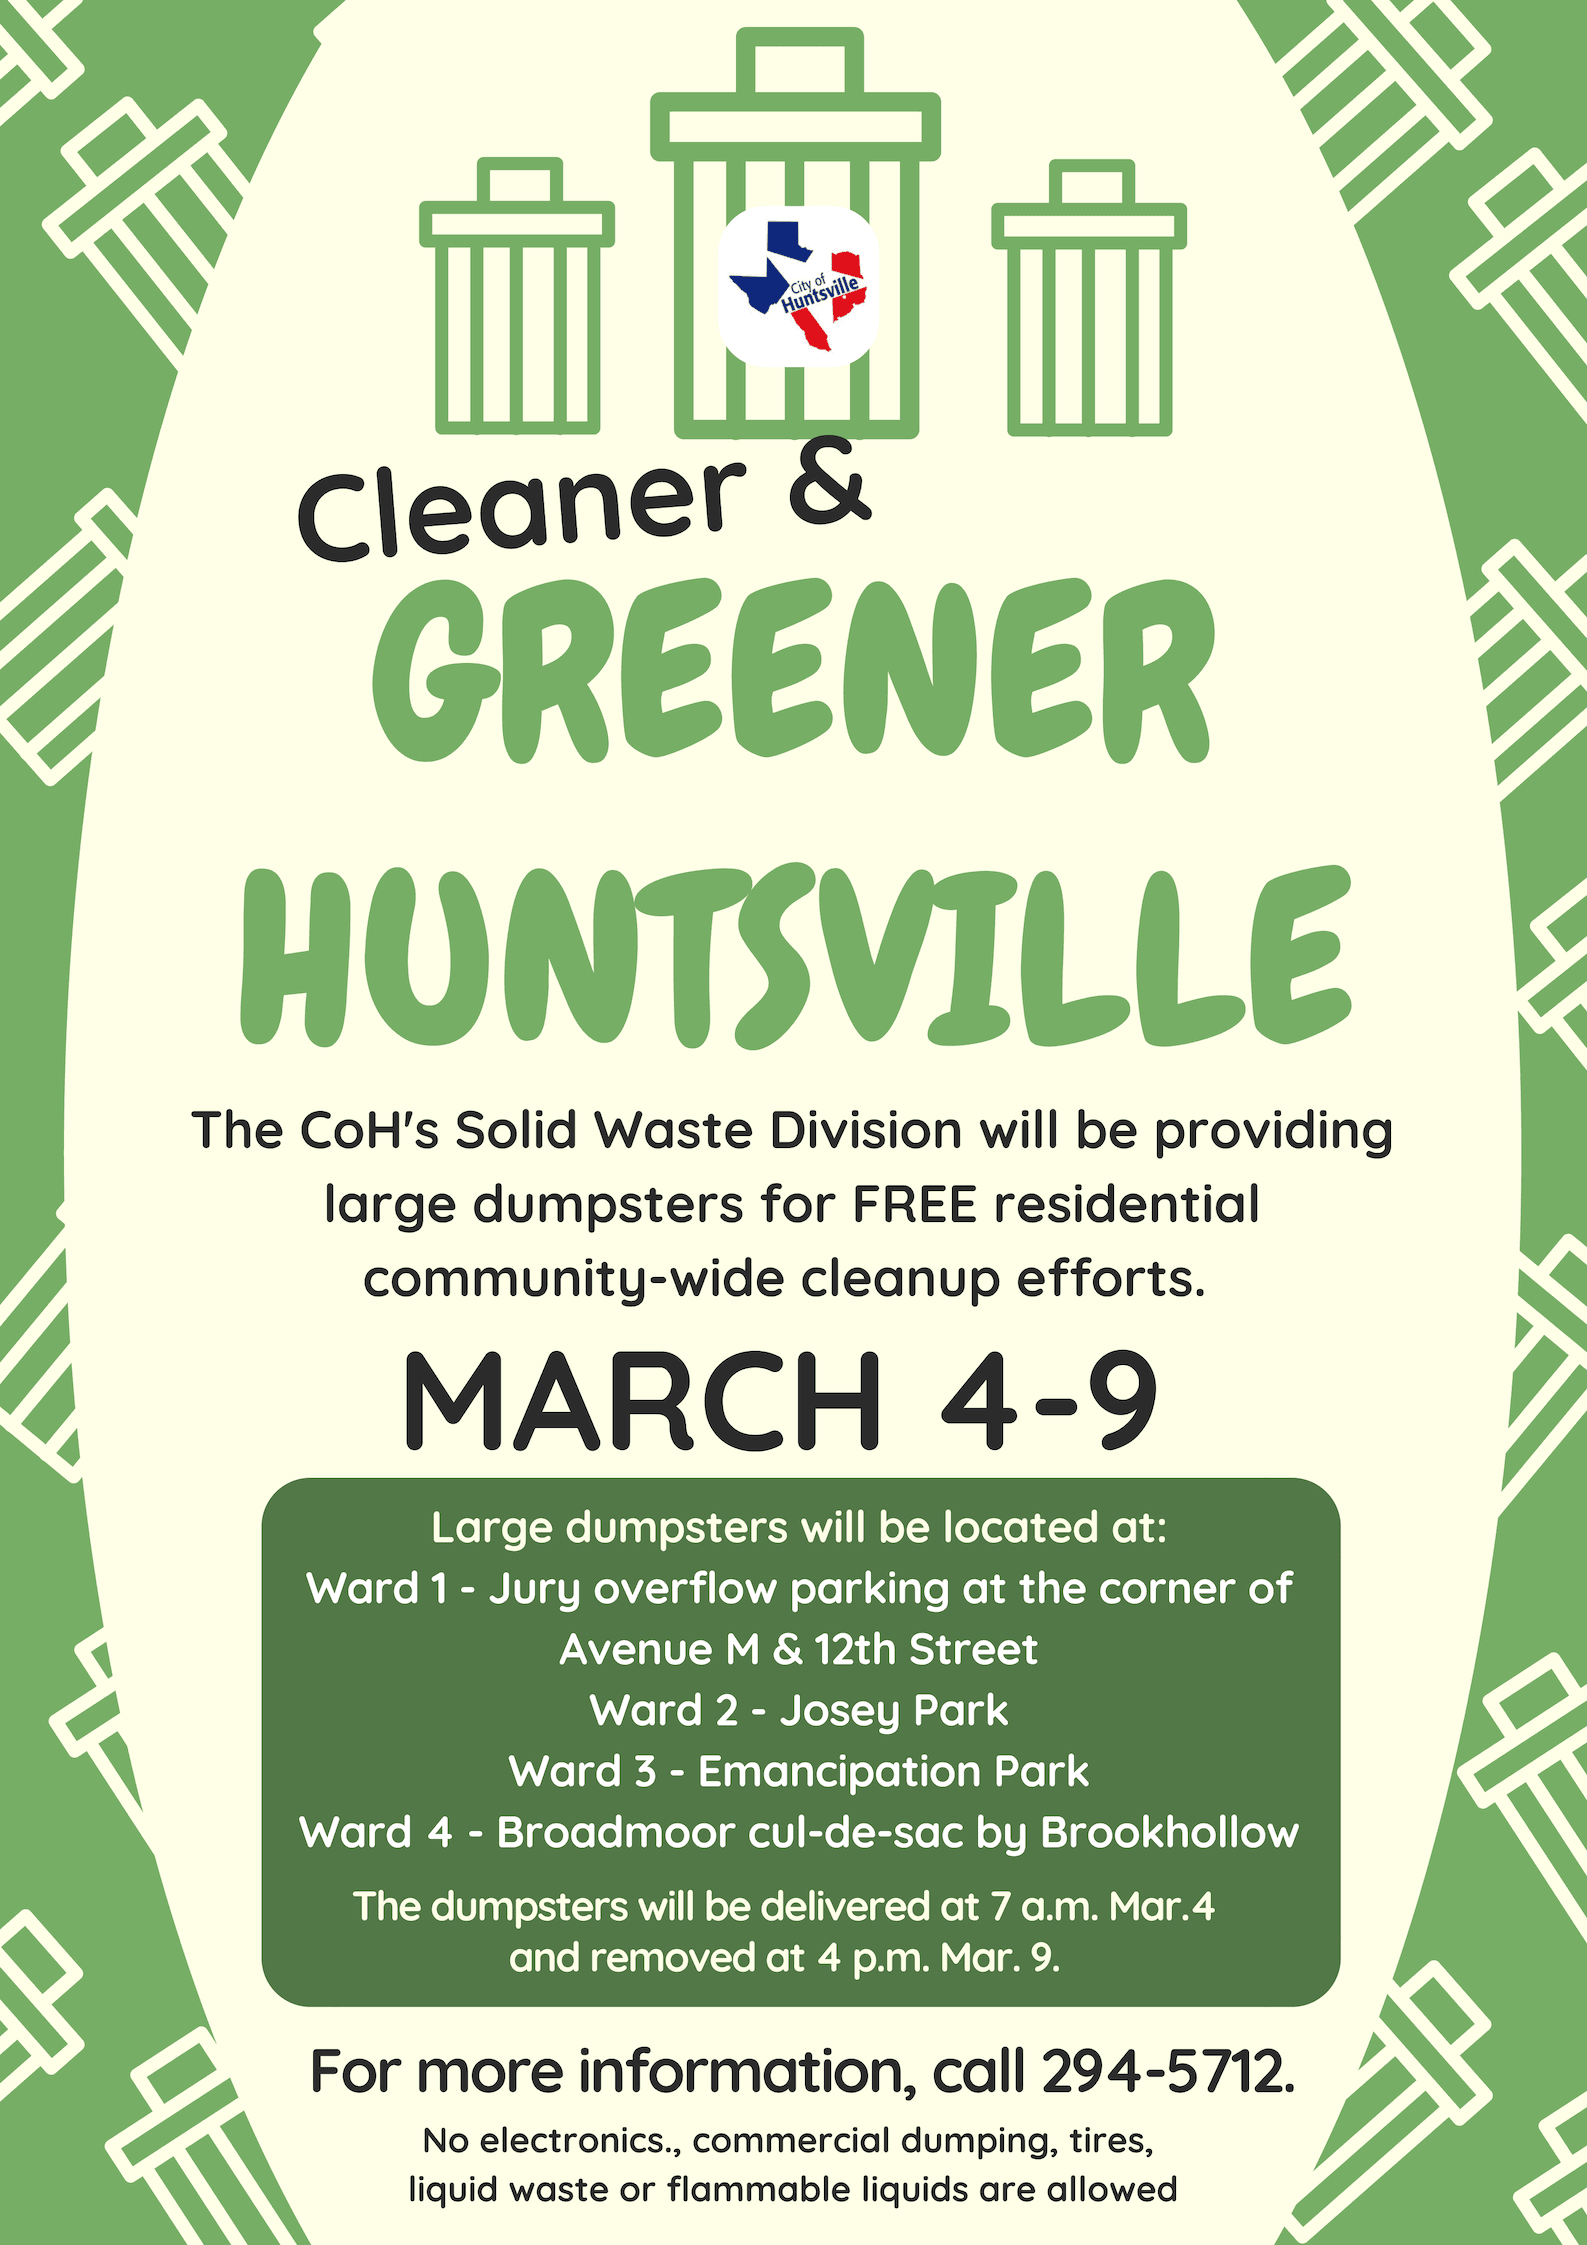 Cleaner Greener Huntsville March 4-9, 2019